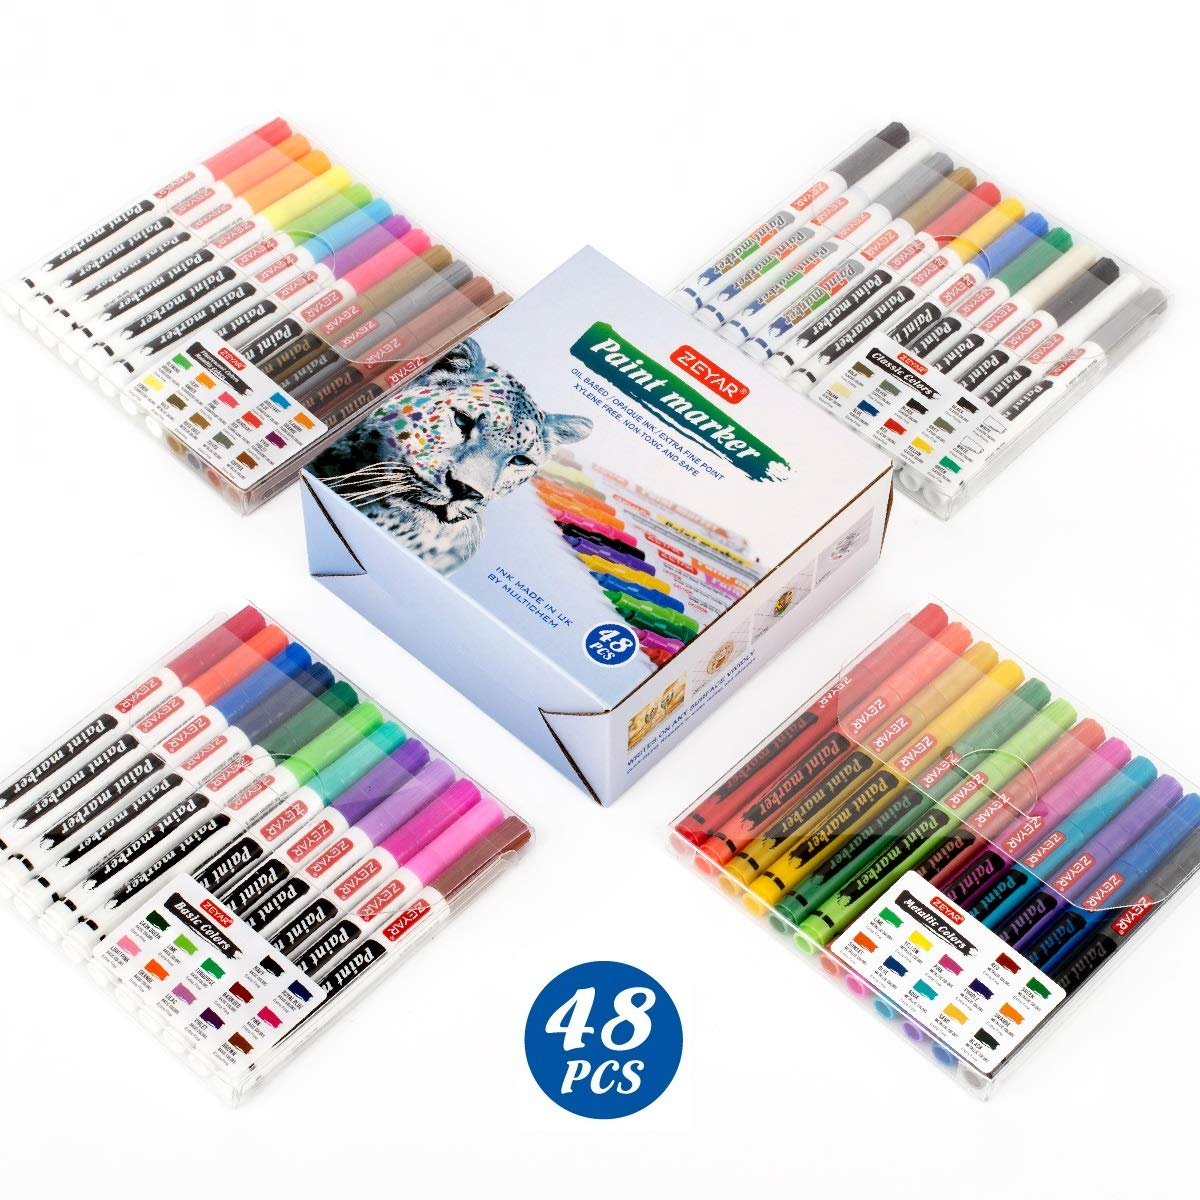 ZEYAR Paint Markers, Expert of Rock Painting, Extra Fine Point, Oil-Based, Full Colors range, 48 PCS, Permanent&Waterproof Ink, Works on Rock, Wood, Glass, Metal and Ceramic and Almost All Surfaces by ZEYAR